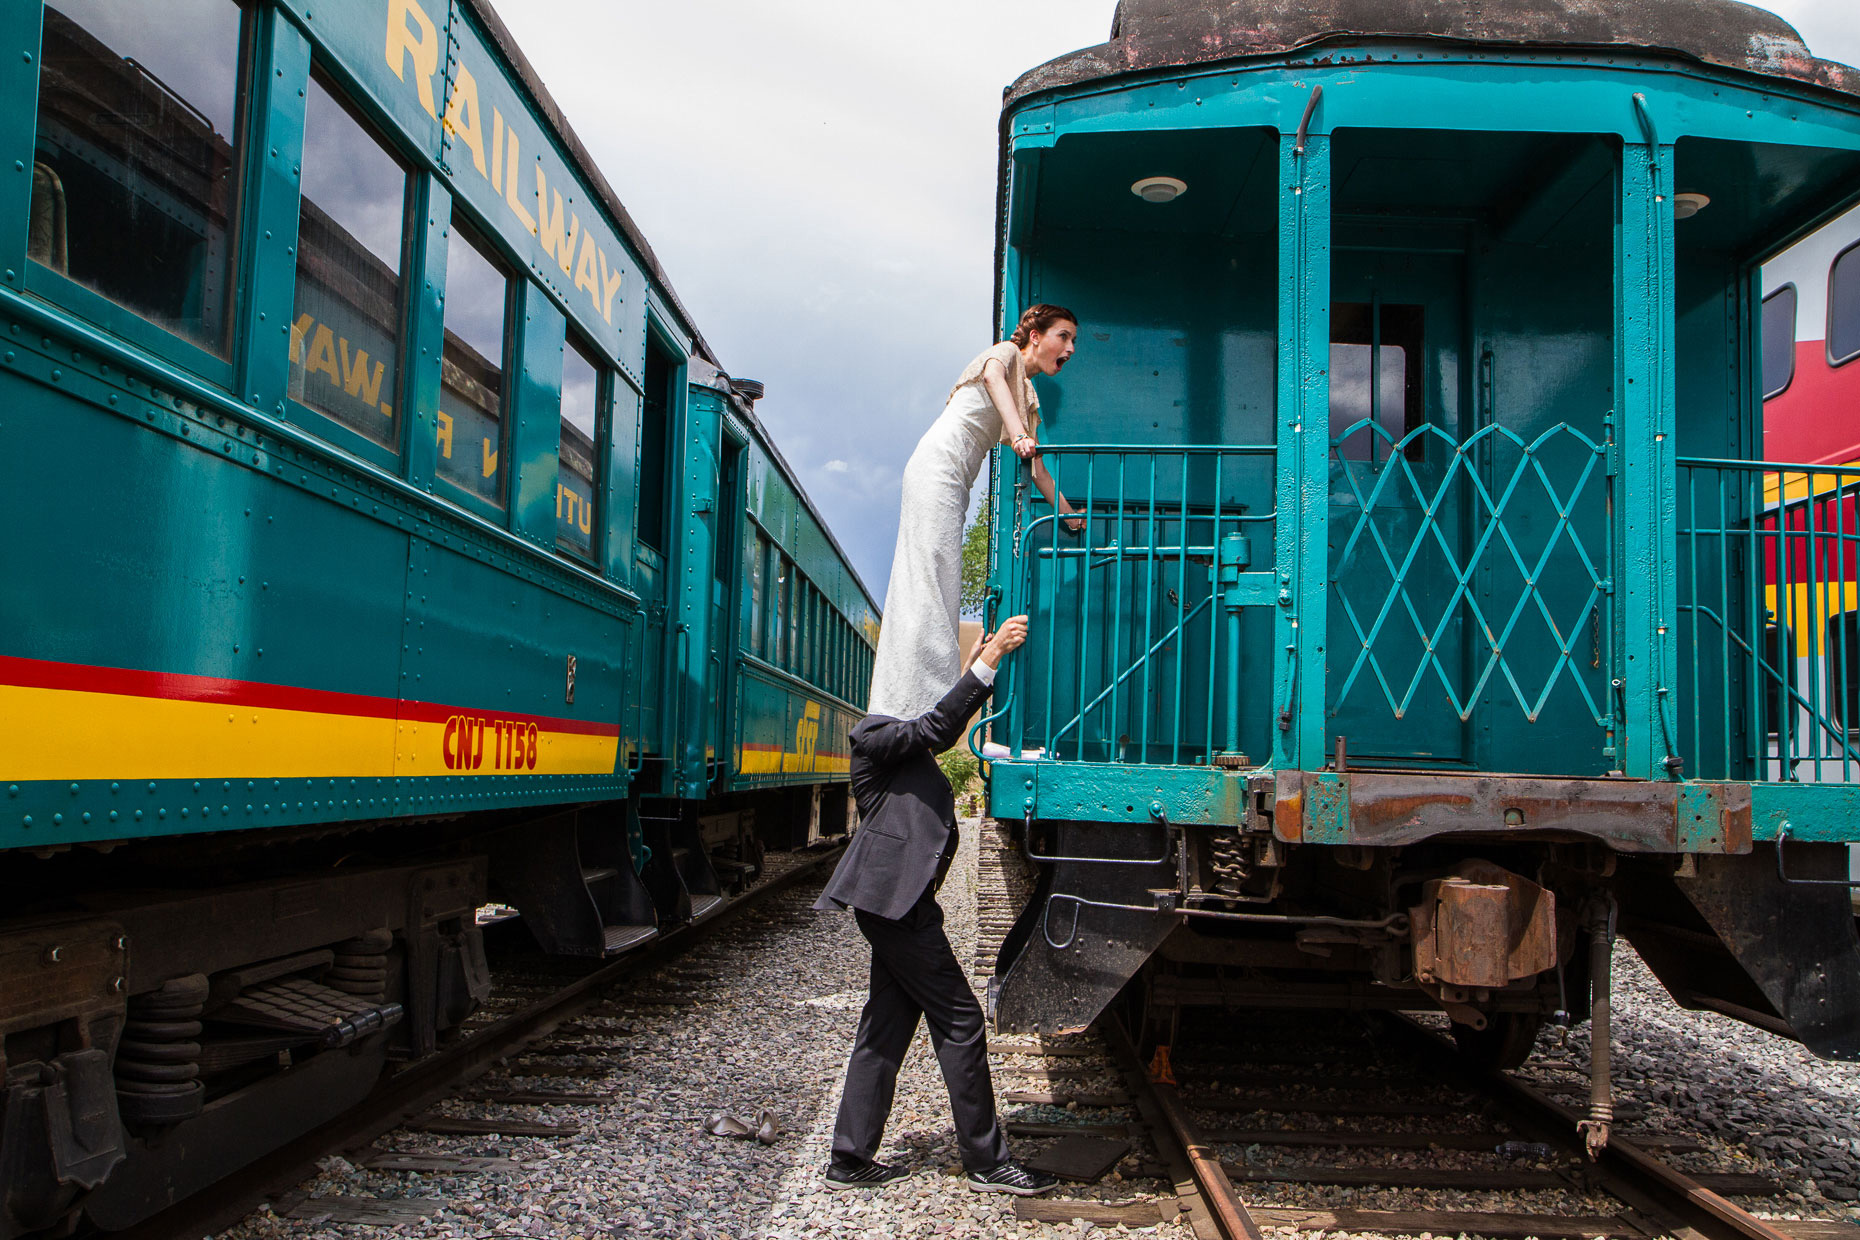 Santa Fe Railyard funny couple on train, Elopement photography